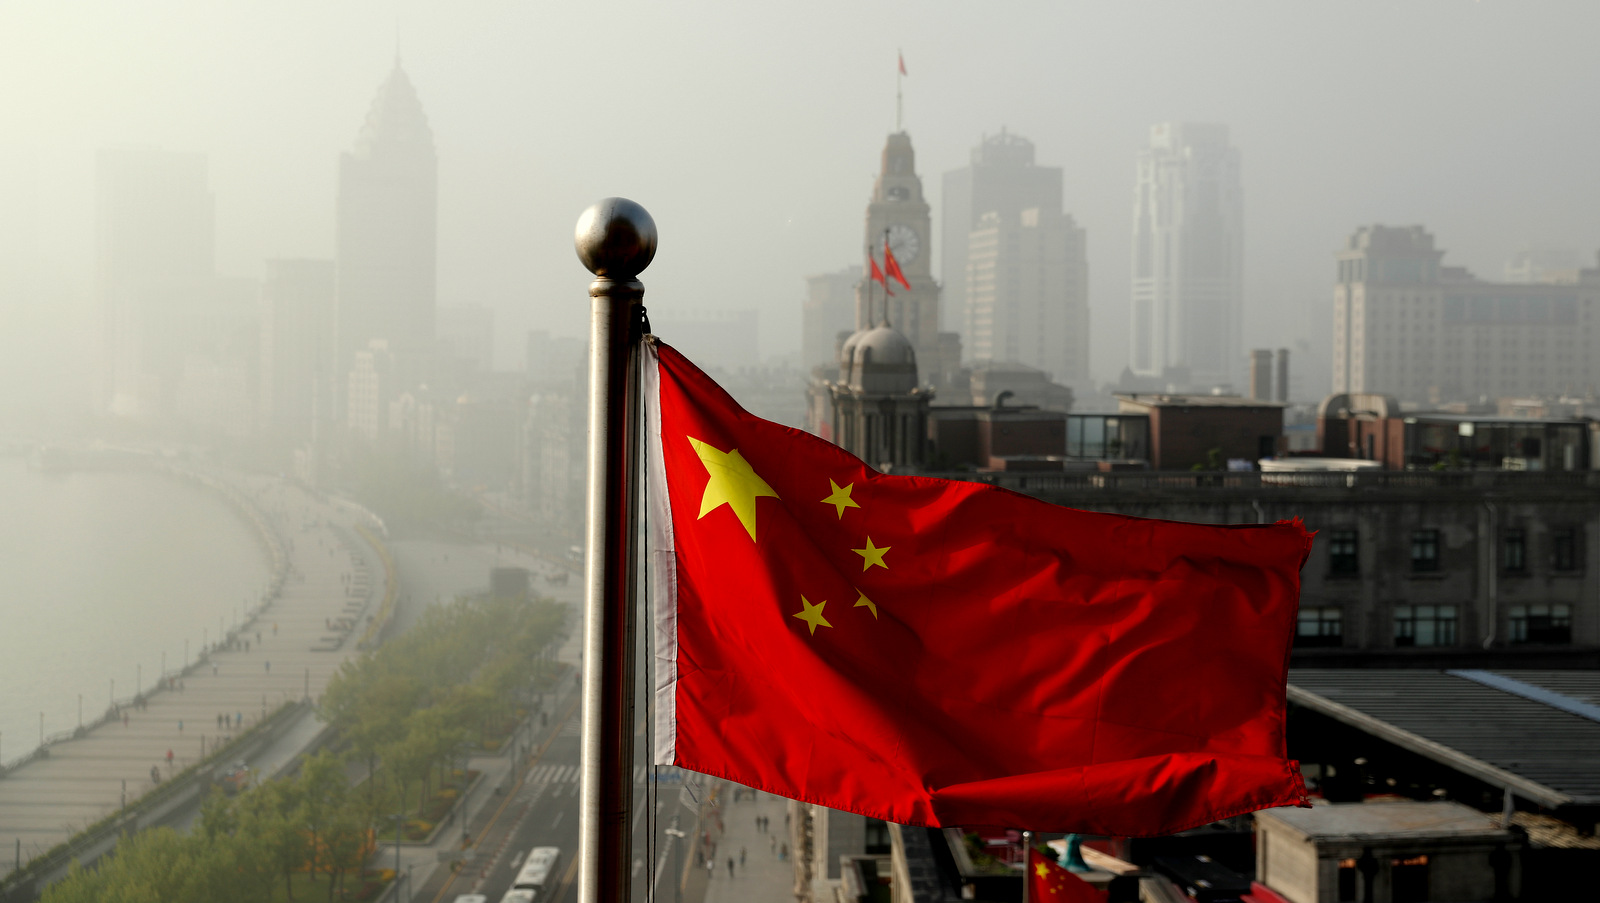 A Chinese national flag flutters against the office buildings at the Shanghai Bund shrouded by pollution and fog in Shanghai, China, Thursday, April 14, 2016. World finance officials who meet in Washington this week confront a bleak picture: Eight years after the financial crisis erupted, the global economy remains fragile and at risk of another recession. (AP Photo/Andy Wong)